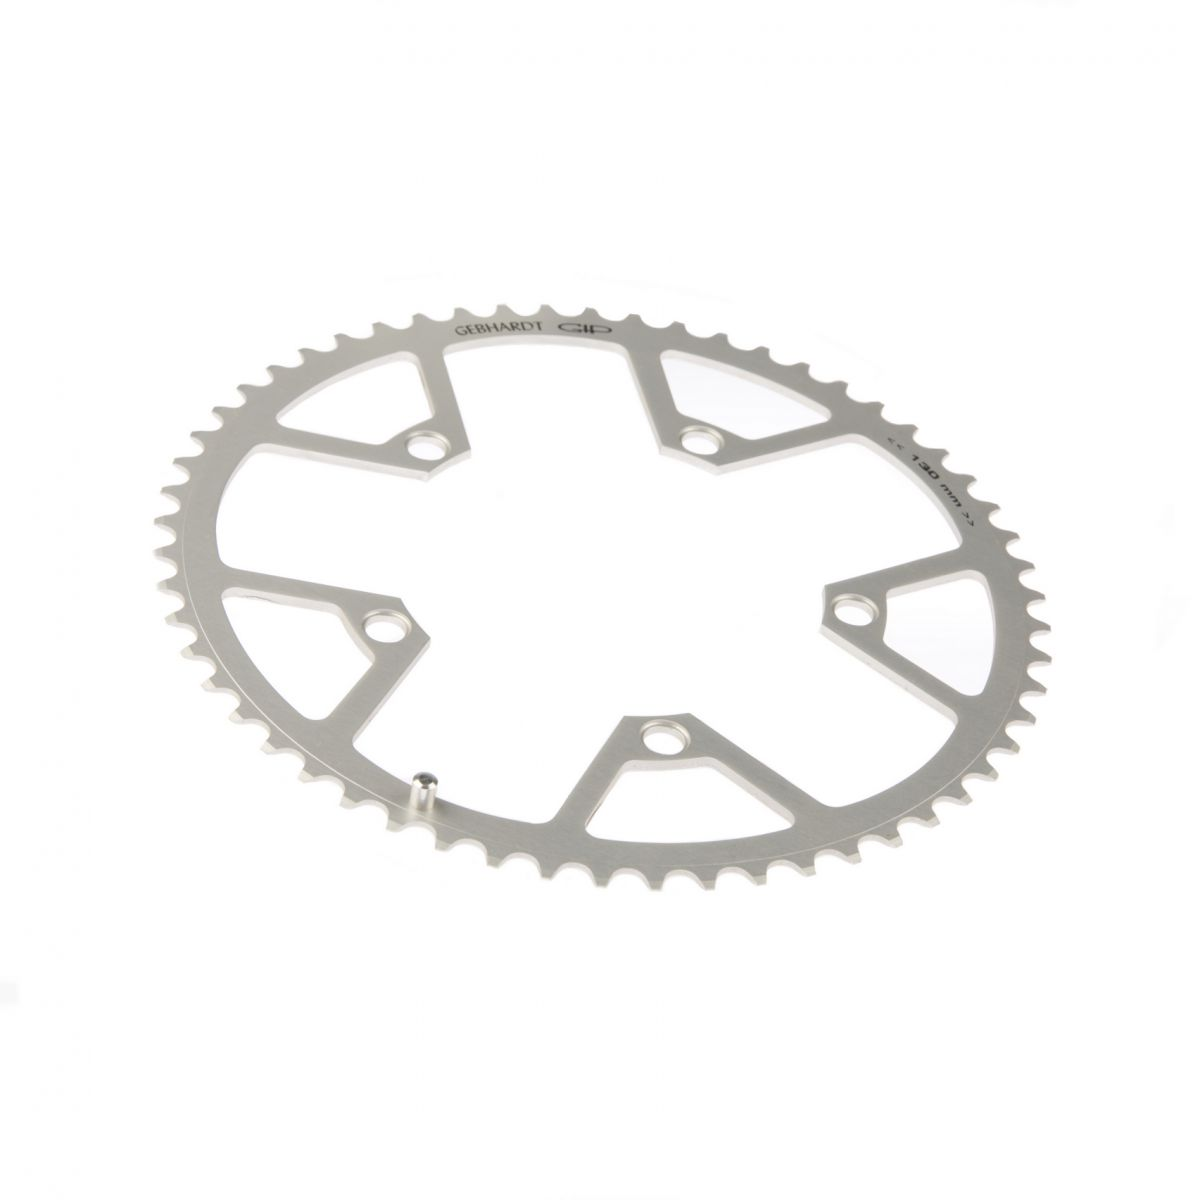 gebhardt chainring classic bcd 130 mm 5hole 57t silver